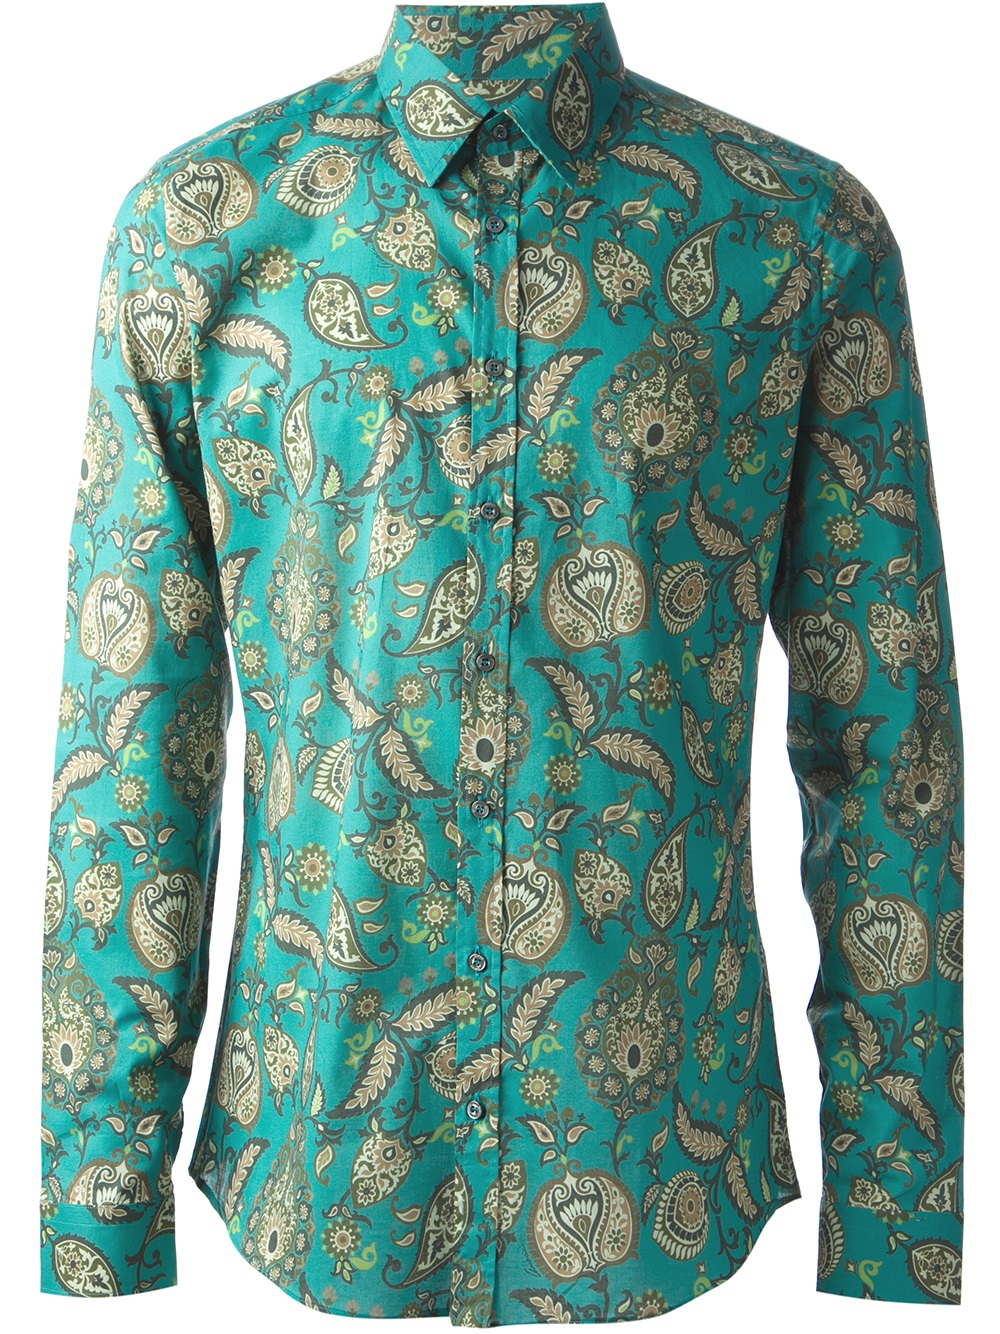 d19c4f86c148 Gucci Paisley Print Shirt in Green for Men - Lyst